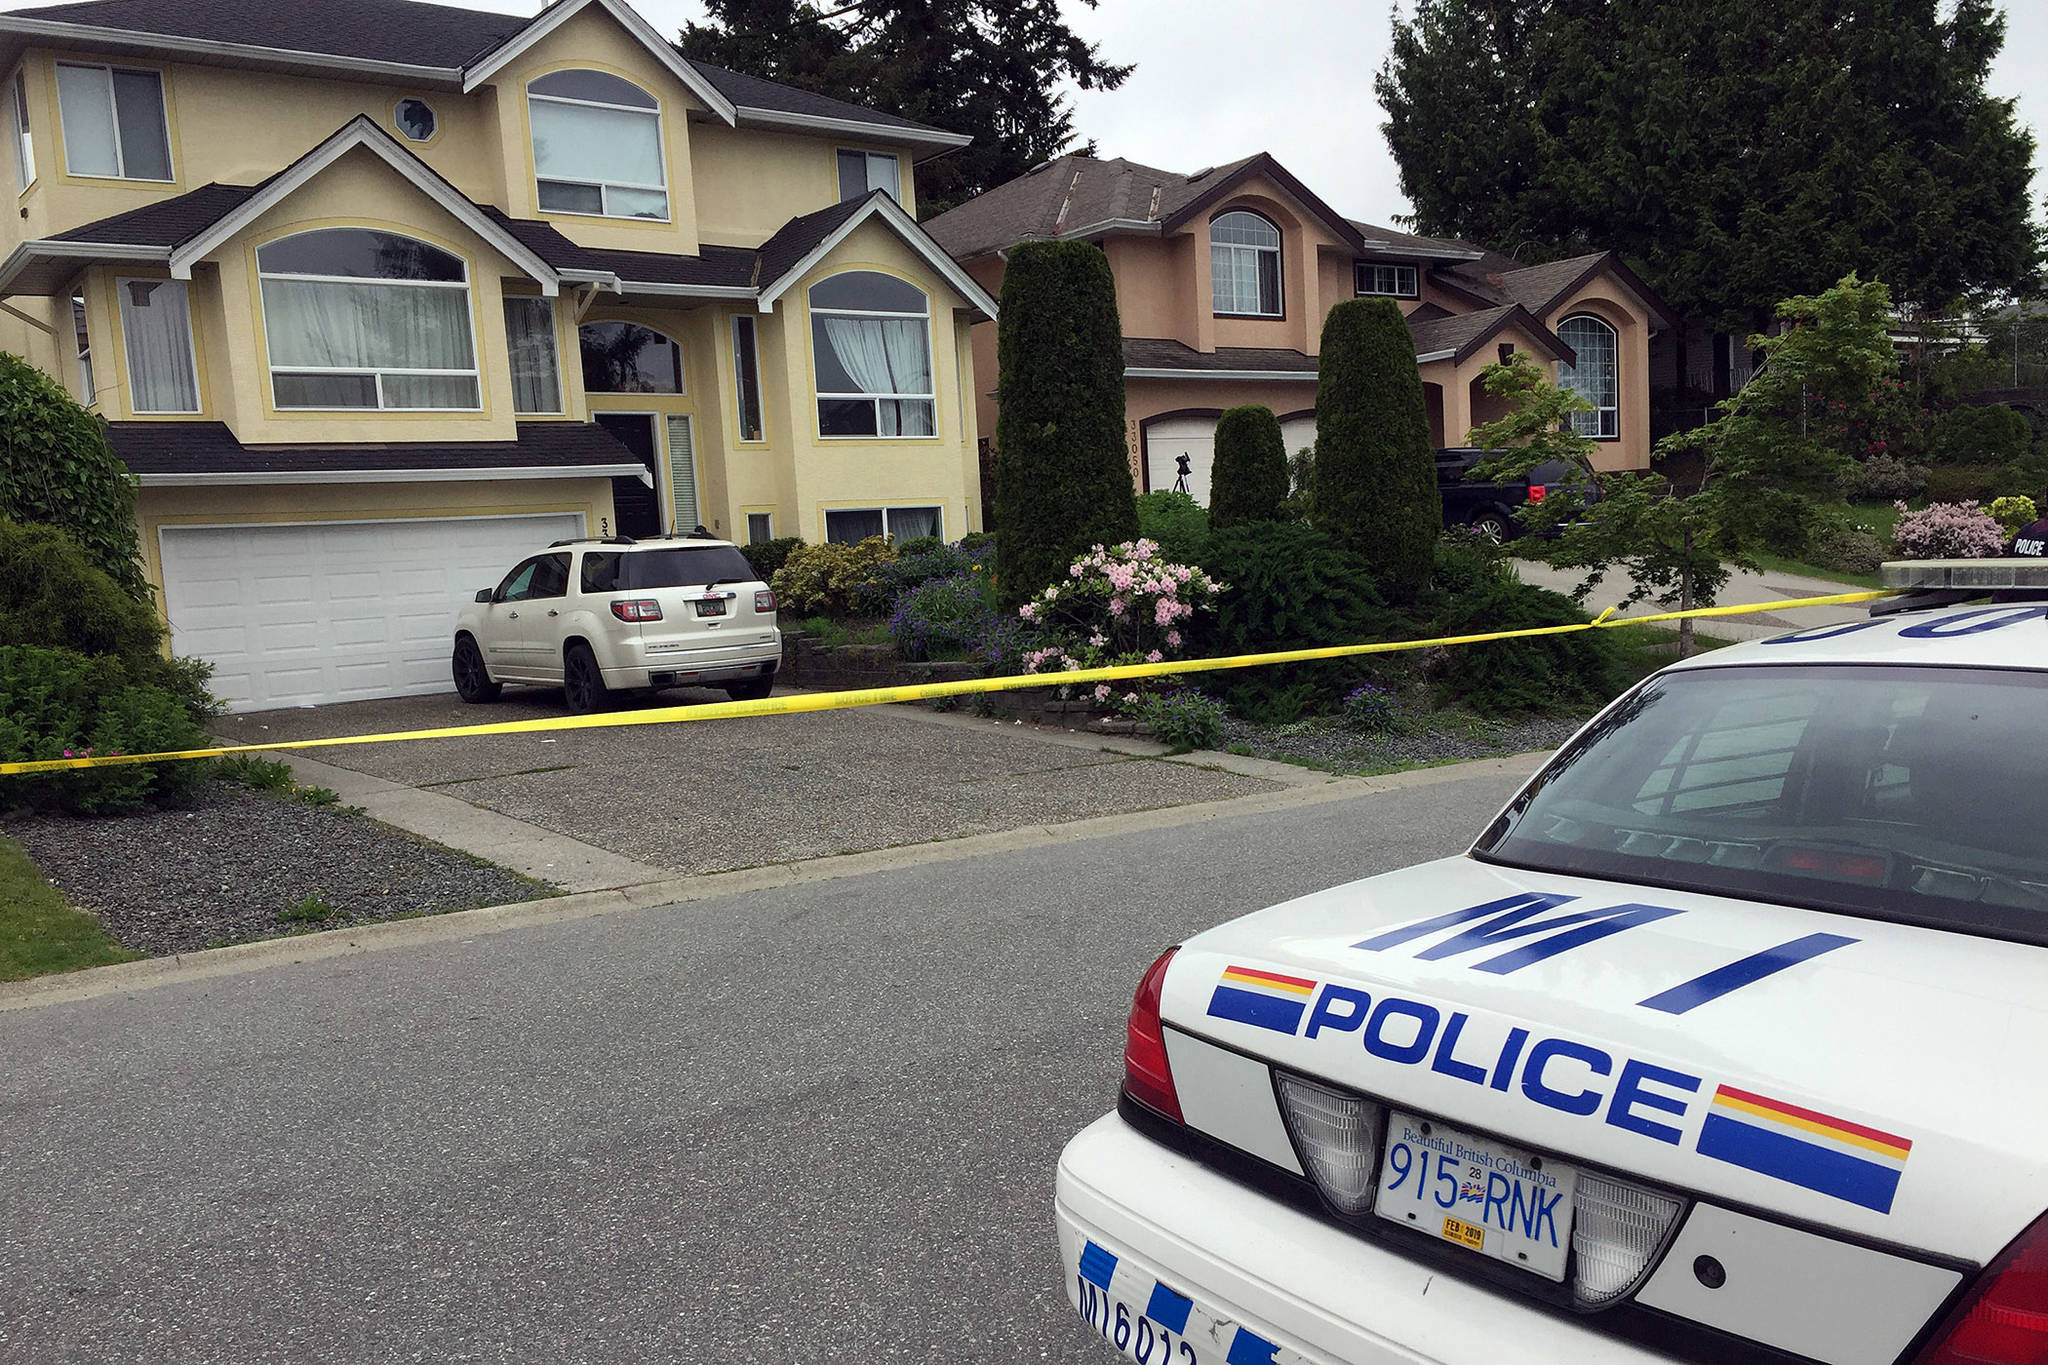 Mission RCMP taped off two properties on Hawthorne Avenue after a toddler was found unresponsive in a backyard pool. The 23-month-old girl went missing from a local daycare.